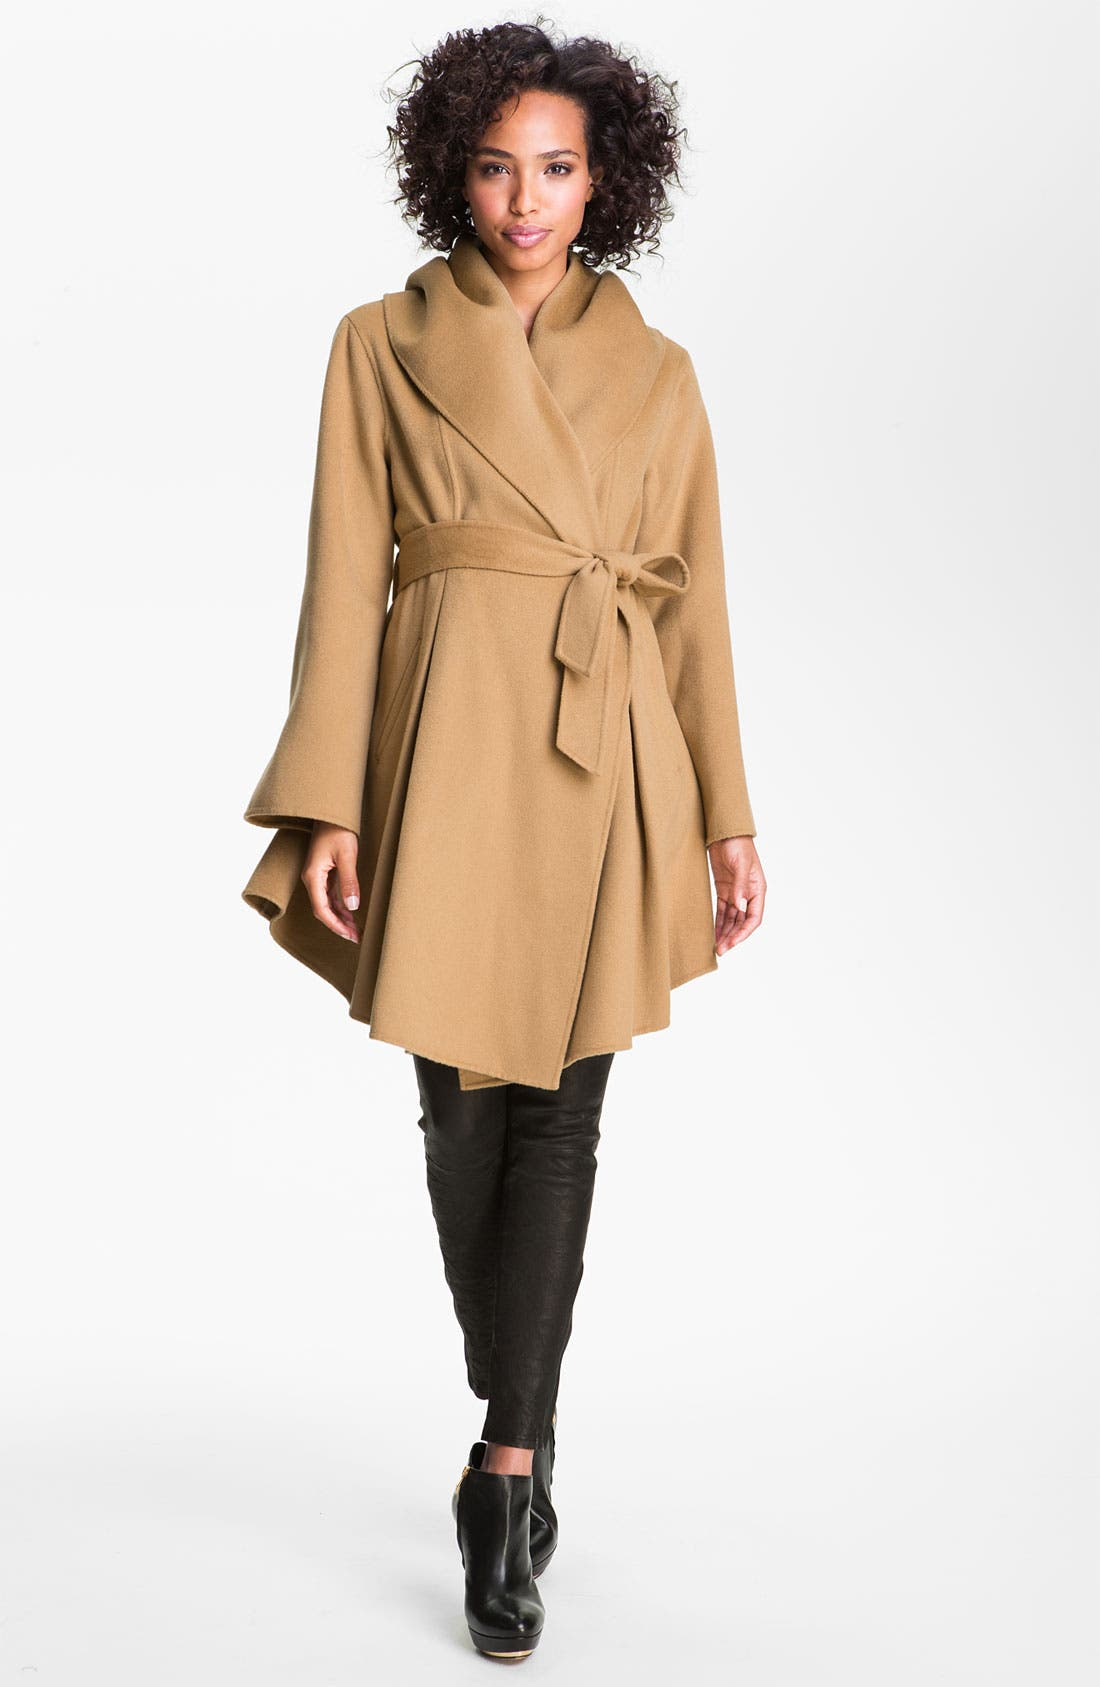 Alternate Image 1 Selected - Dawn Levy Wool & Cashmere Wrap Coat (Online Exclusive)